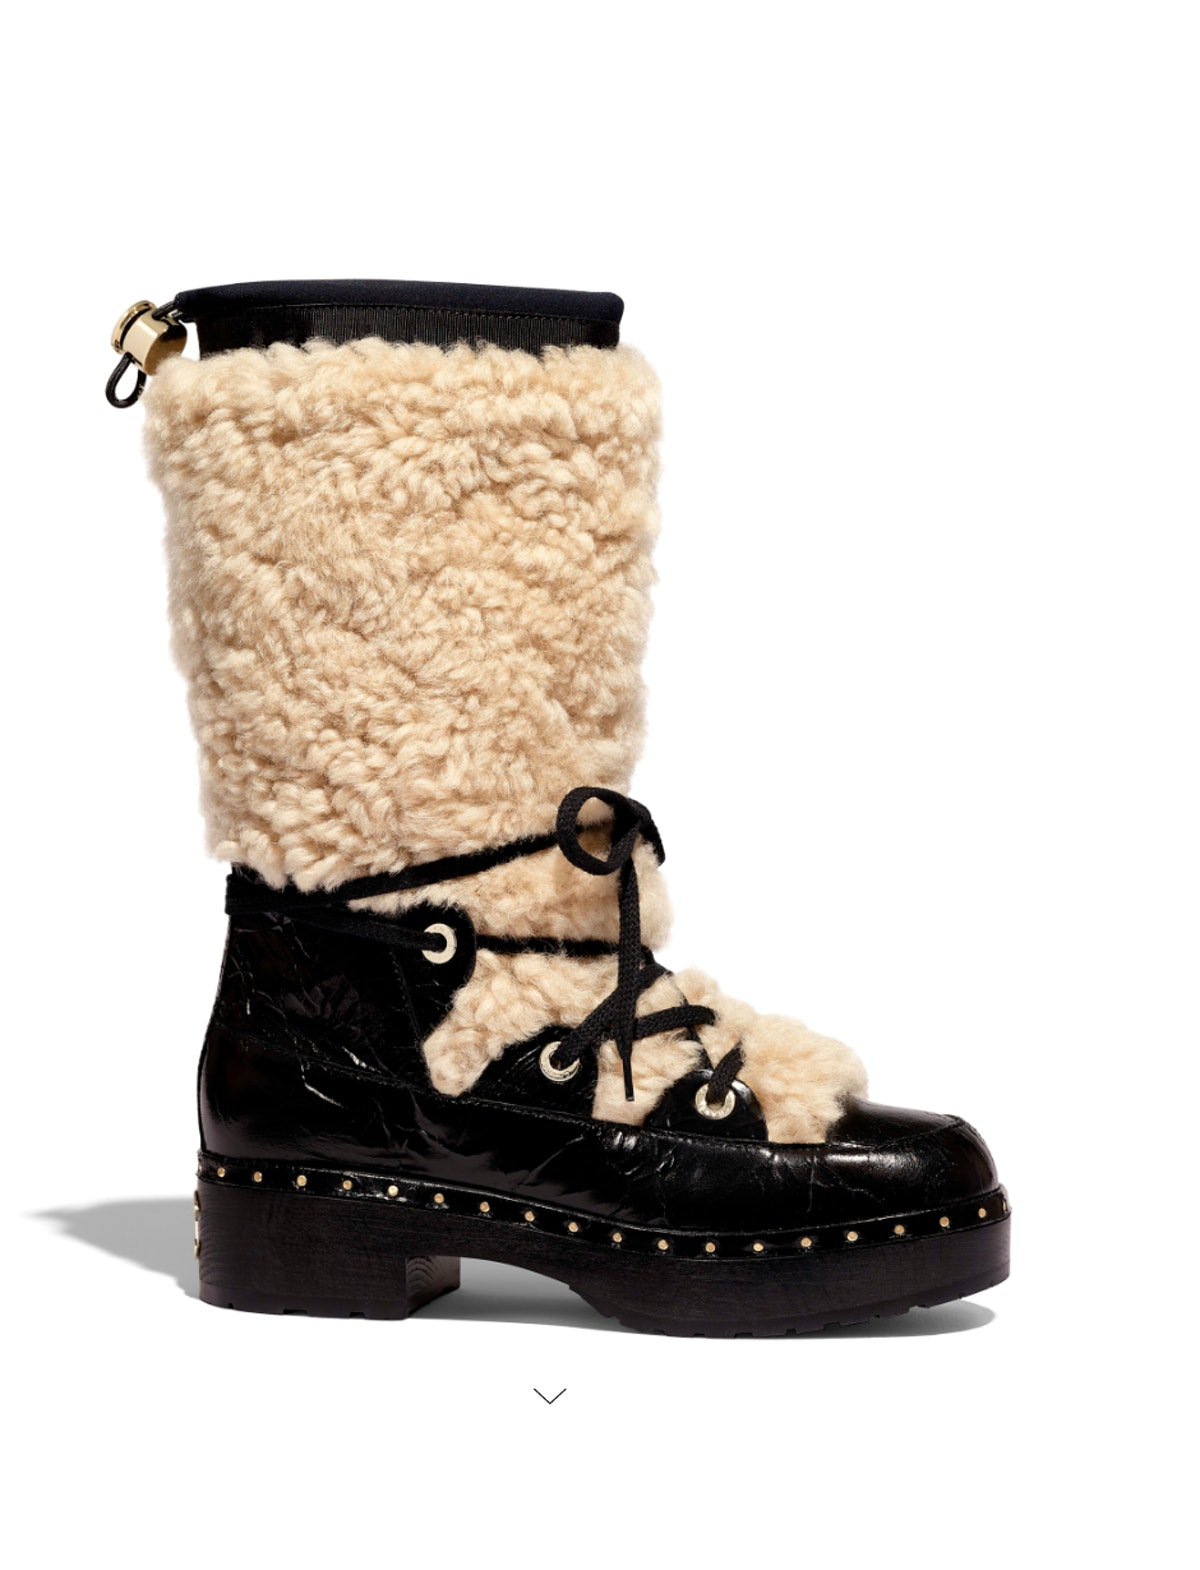 Shearling High Boots